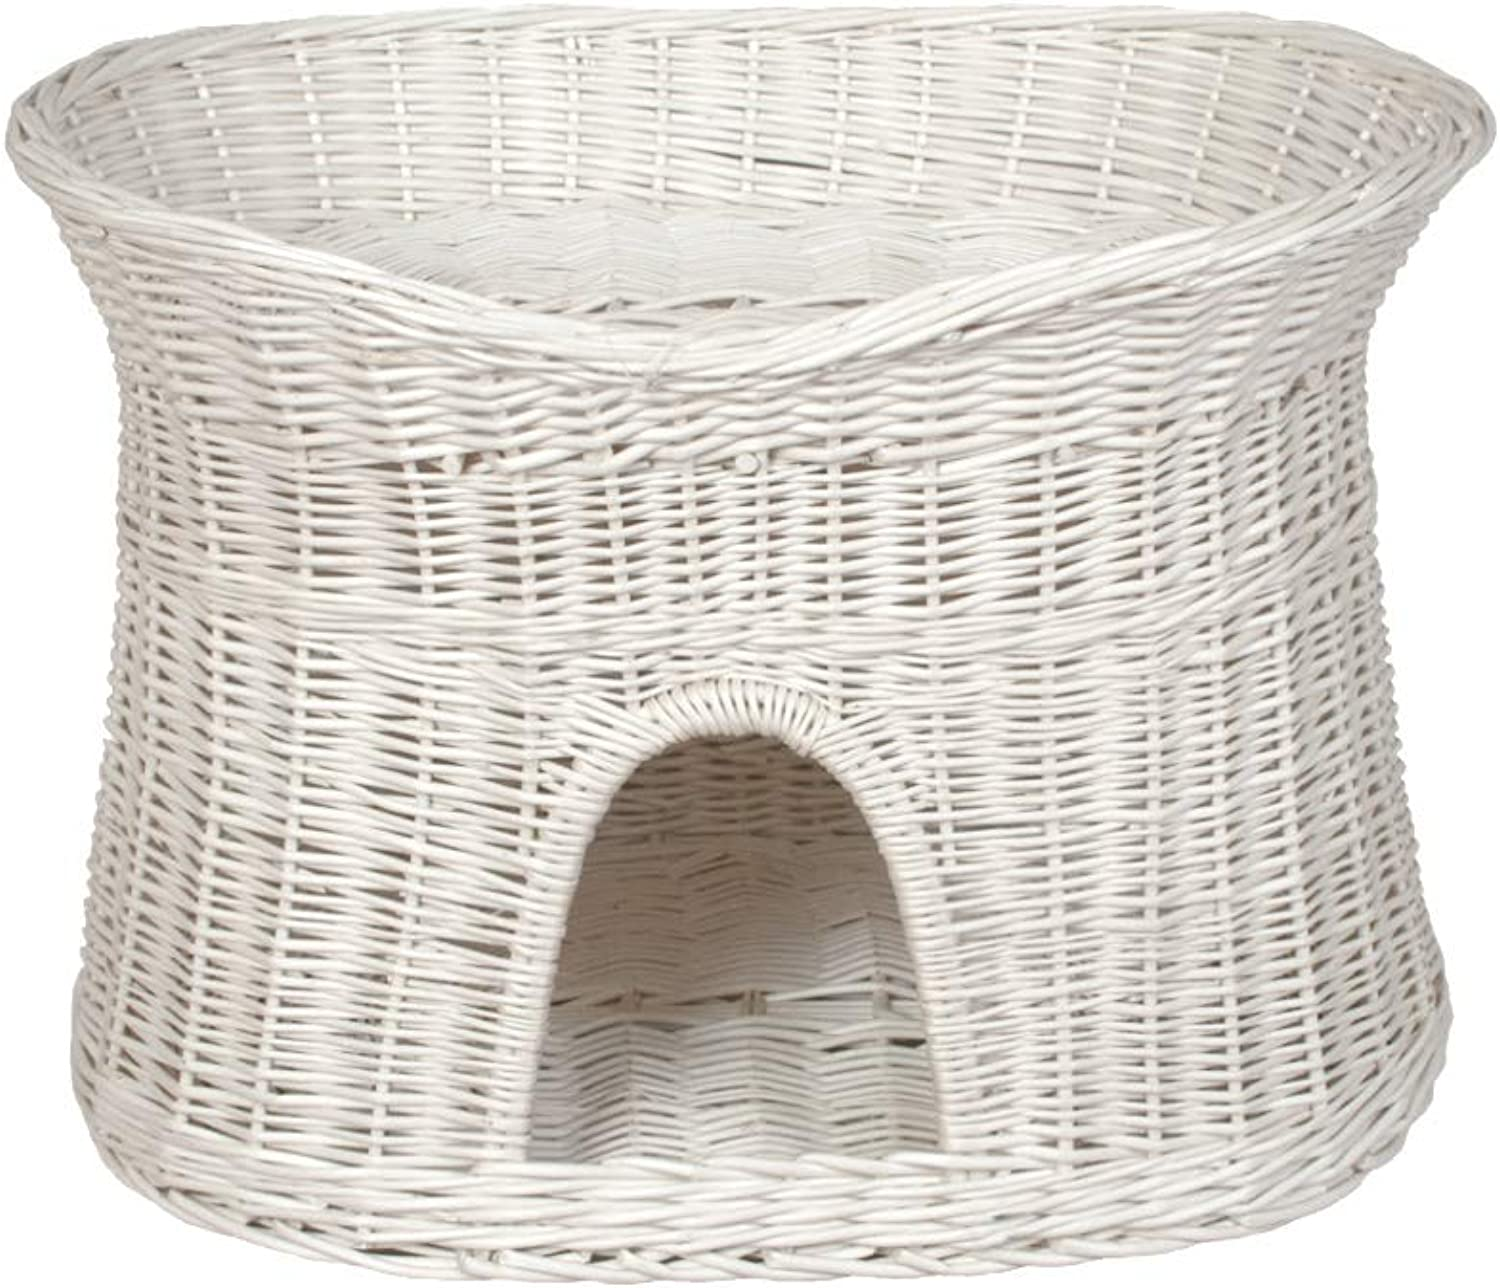 DamianWiklina Wicker Two Tier Pet Pod Cat Dog Bed Basket – White wicker colour – Size L (without pillows)